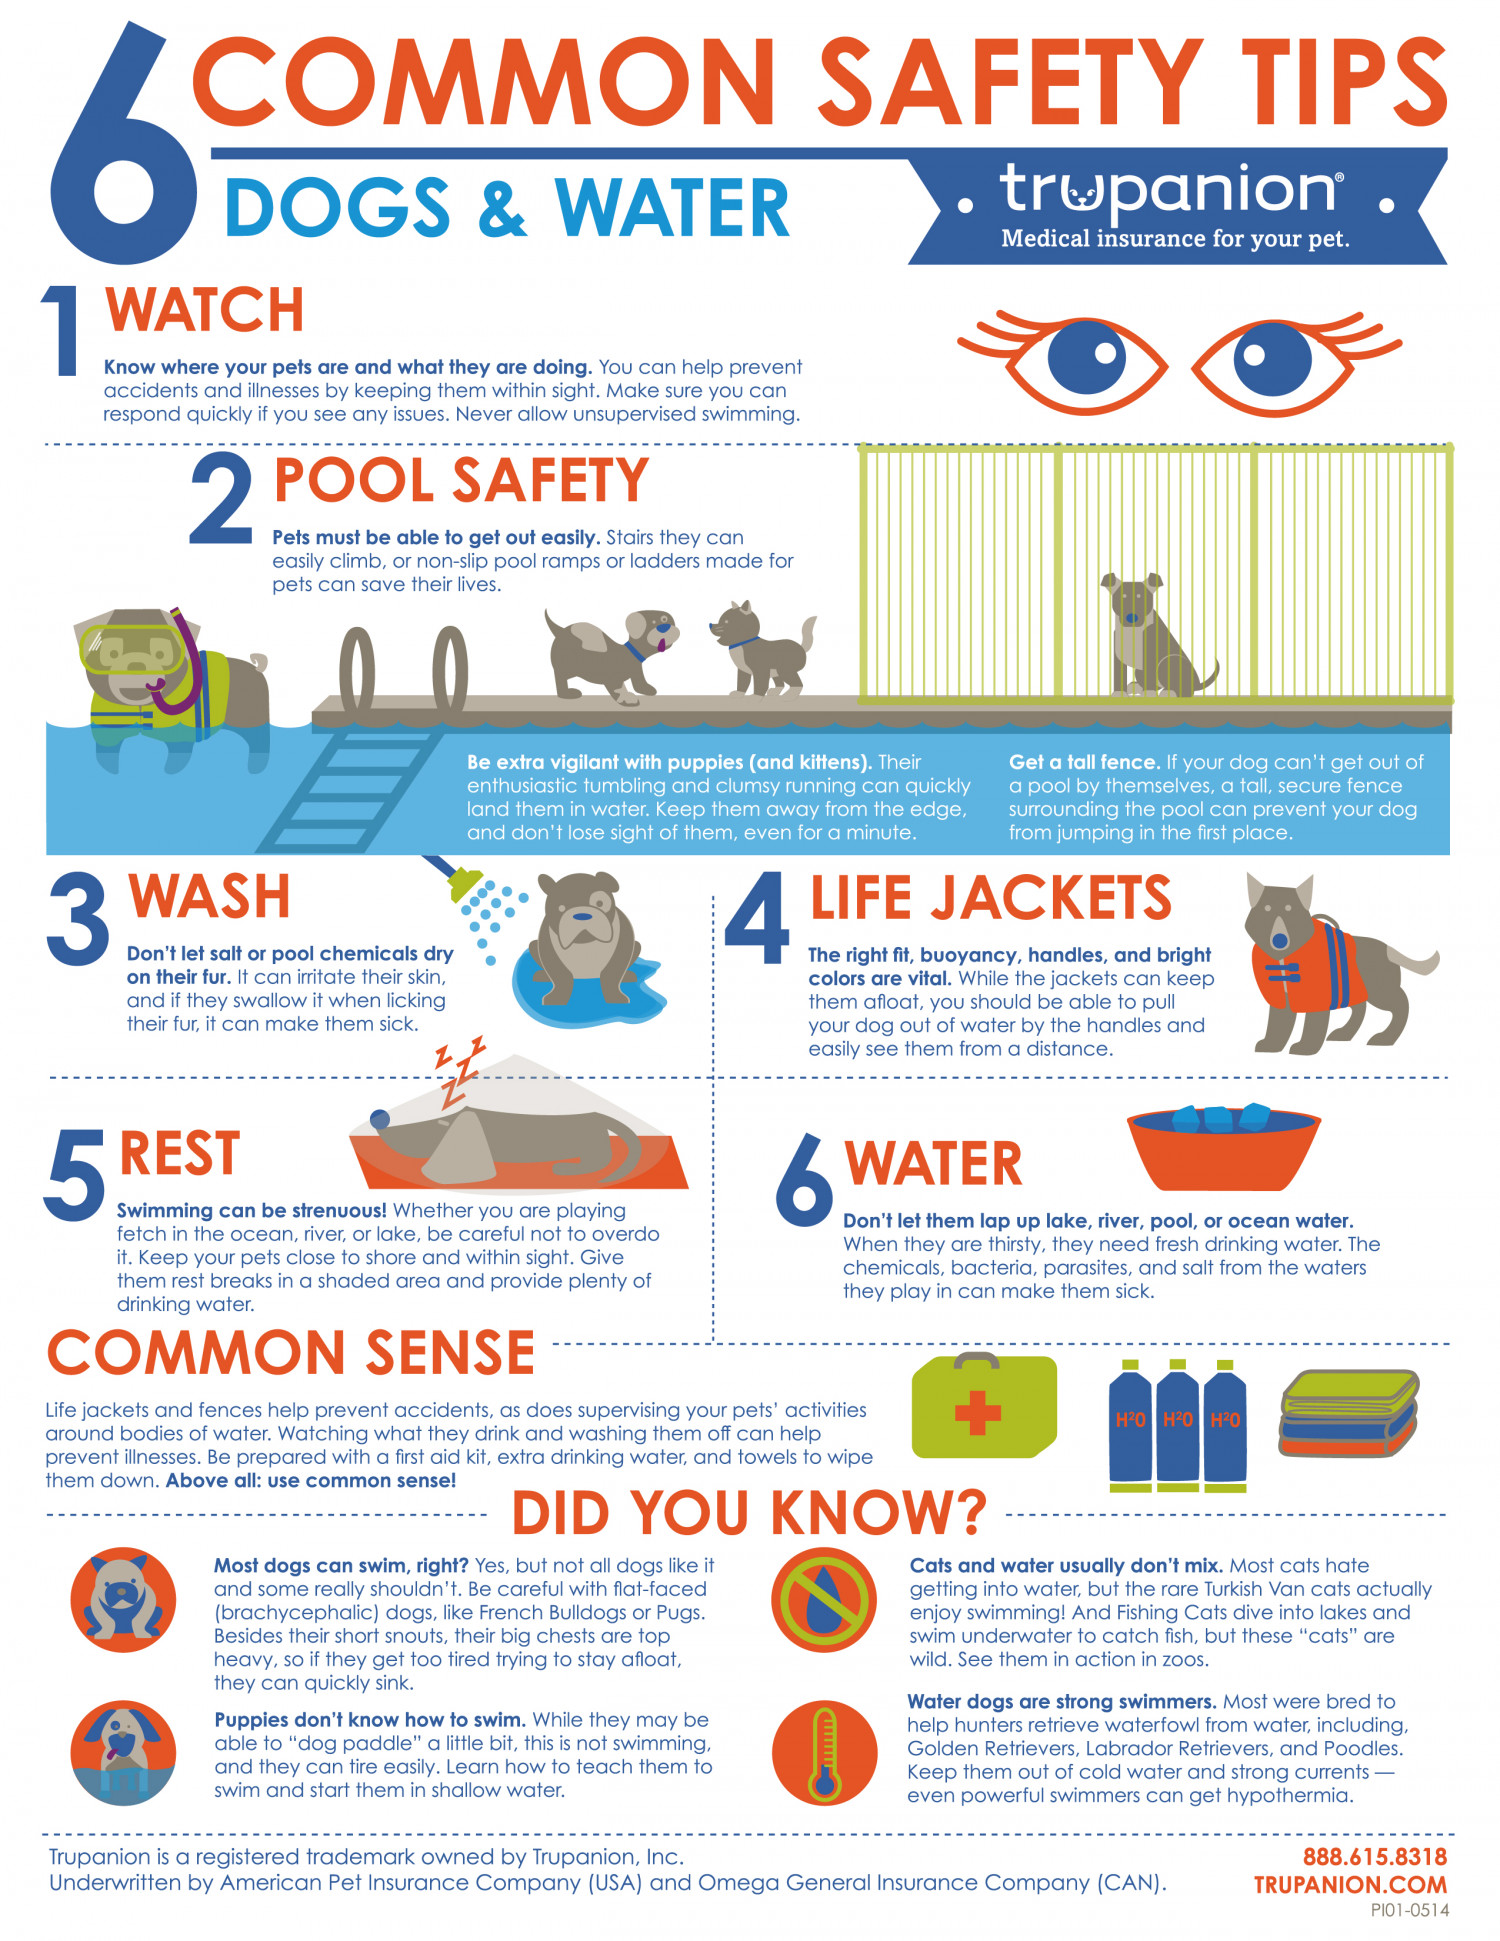 6 Common Safety Tips For Dogs Amp Water